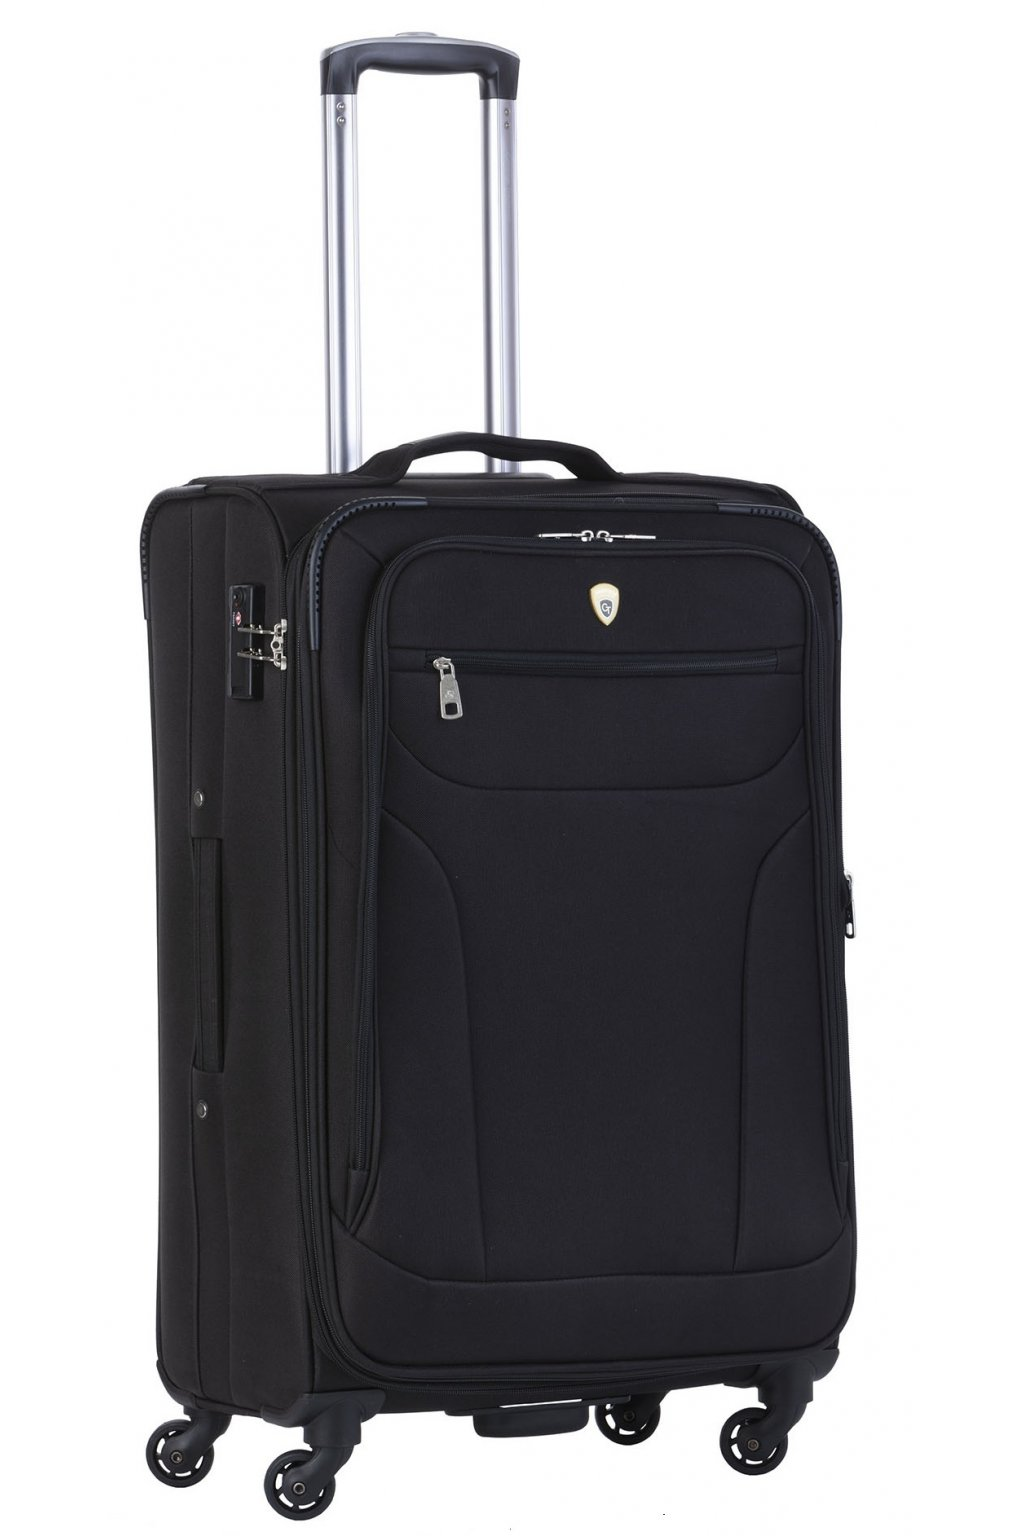 kufrland carryon cambridge black (4)